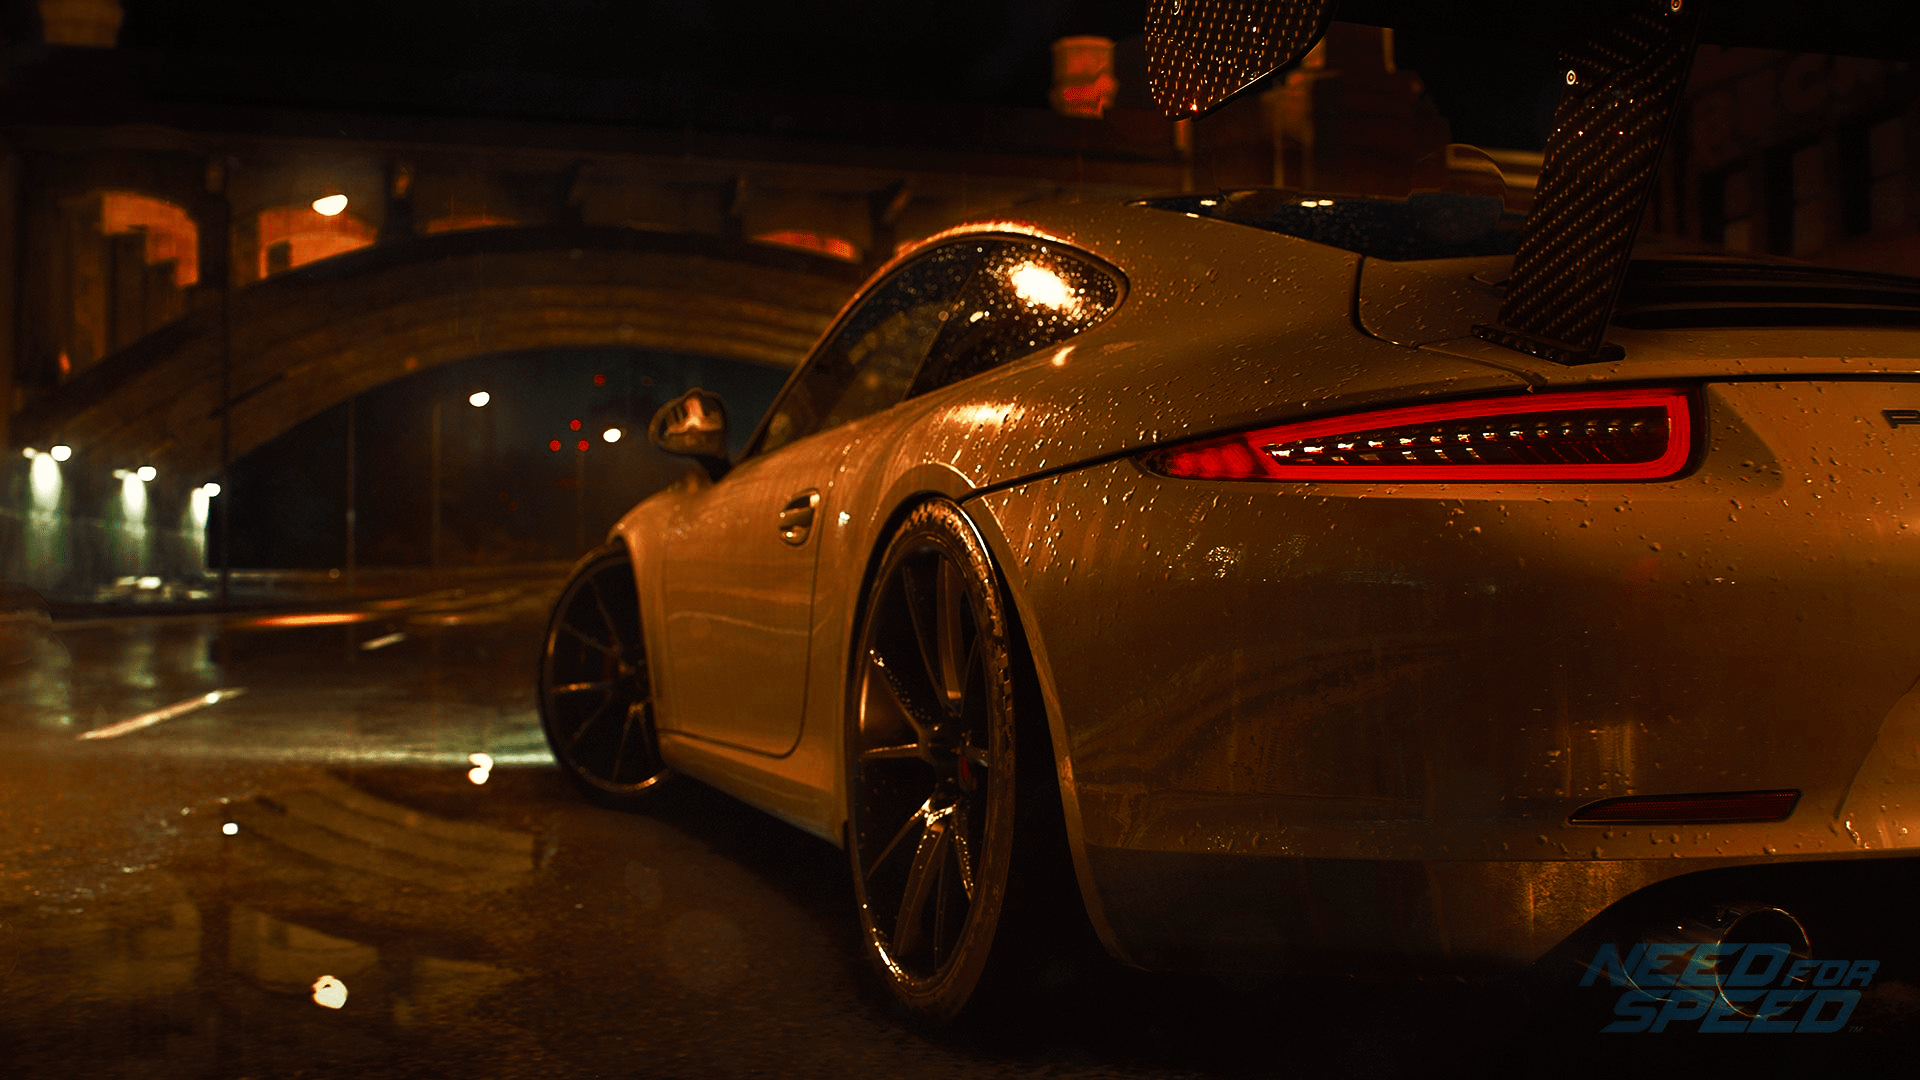 Need for Speed HD Wallpaper Background 25877 Wallur 1920x1080